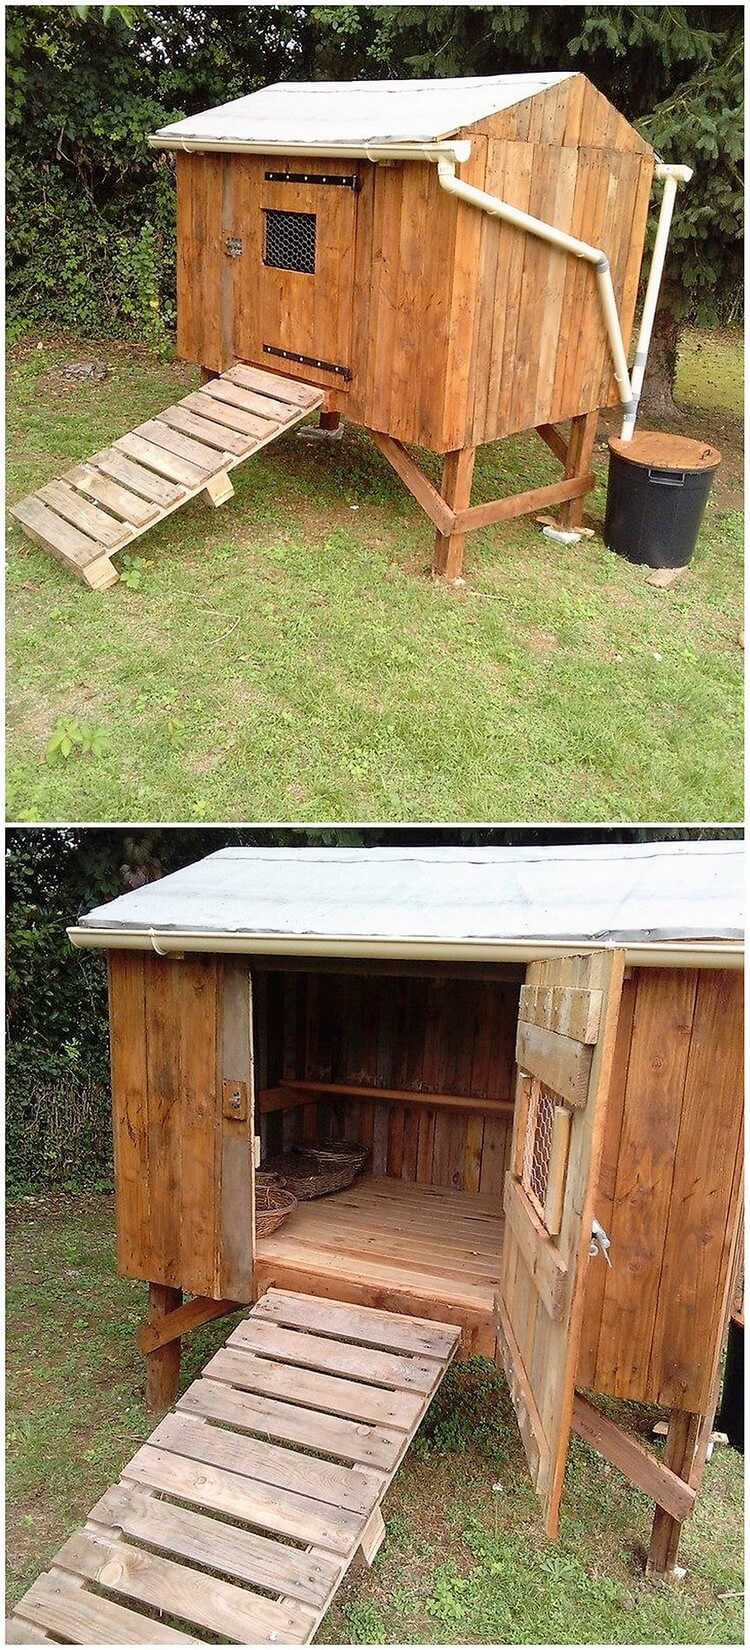 Recreation ideas with old dumped wood pallets pallet Chicken coop from pallet wood